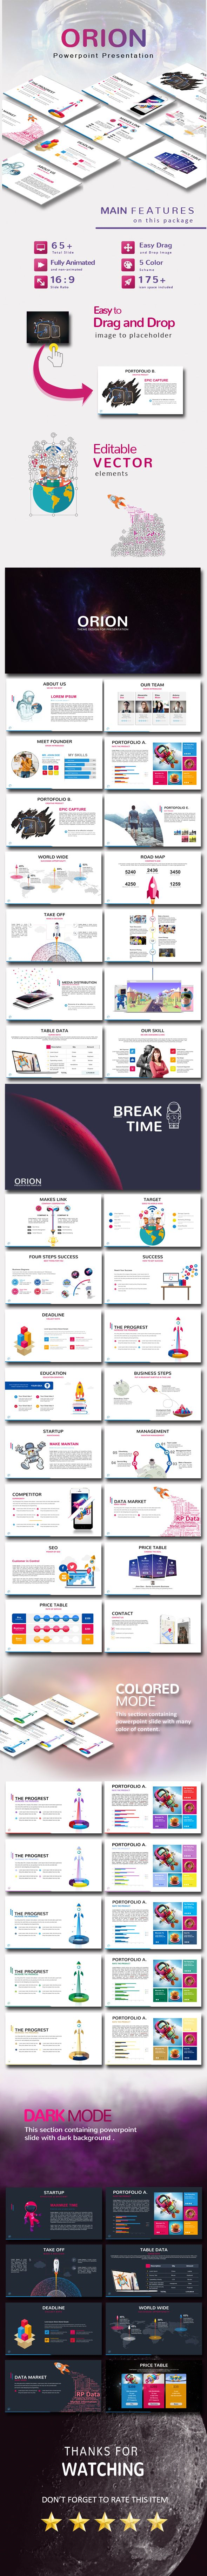 Orion PowerPoint Template - Business #PowerPoint #Templates Download here: https://graphicriver.net/item/orion-powerpoint-template/17106577?ref=alena994